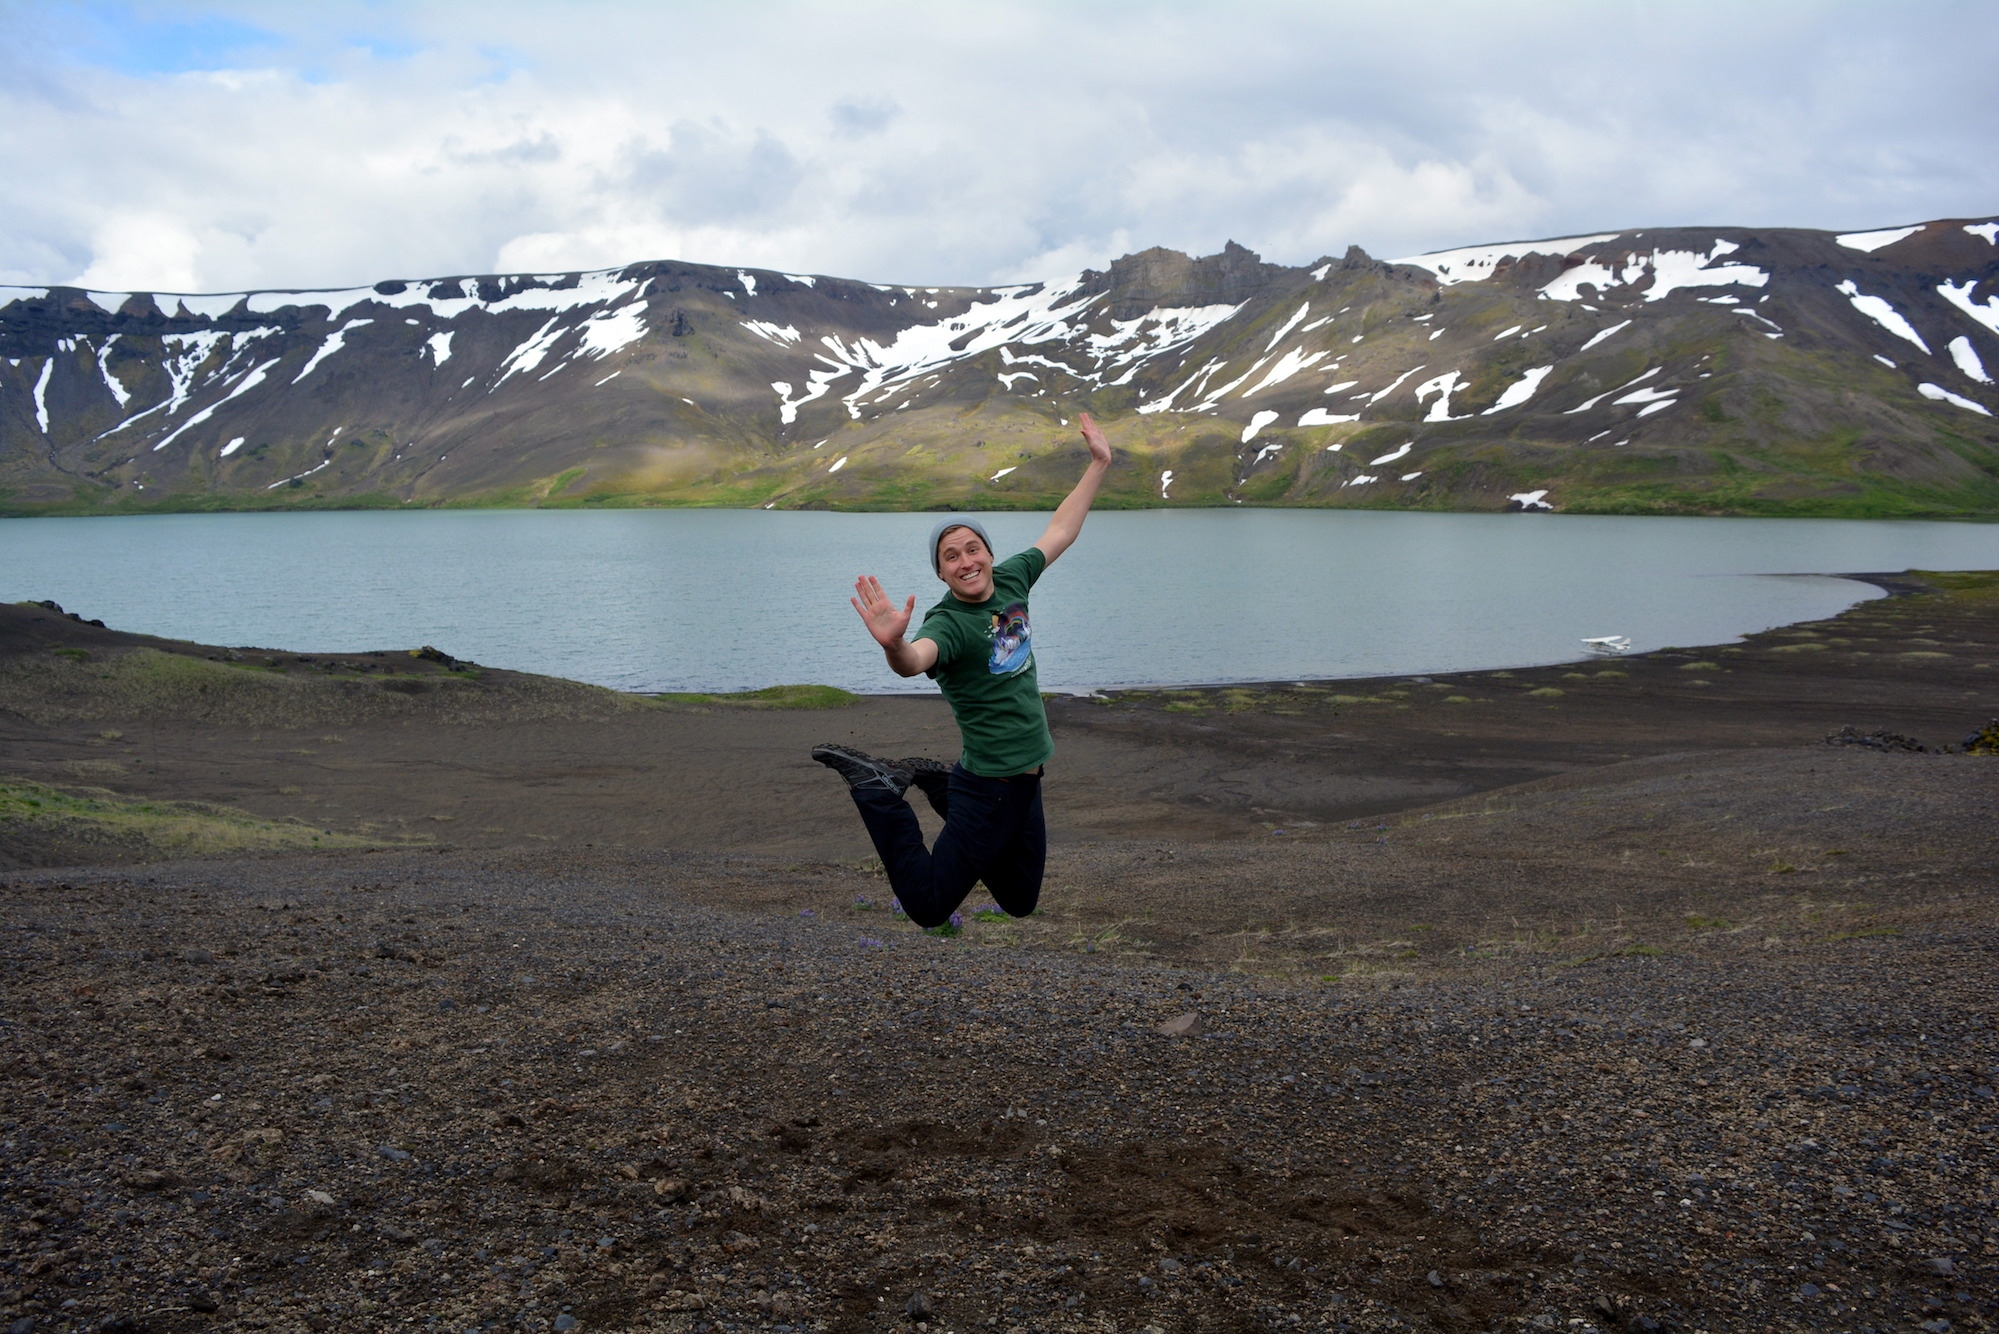 Mikah Meyer at Aniakchak National Monument June 2018